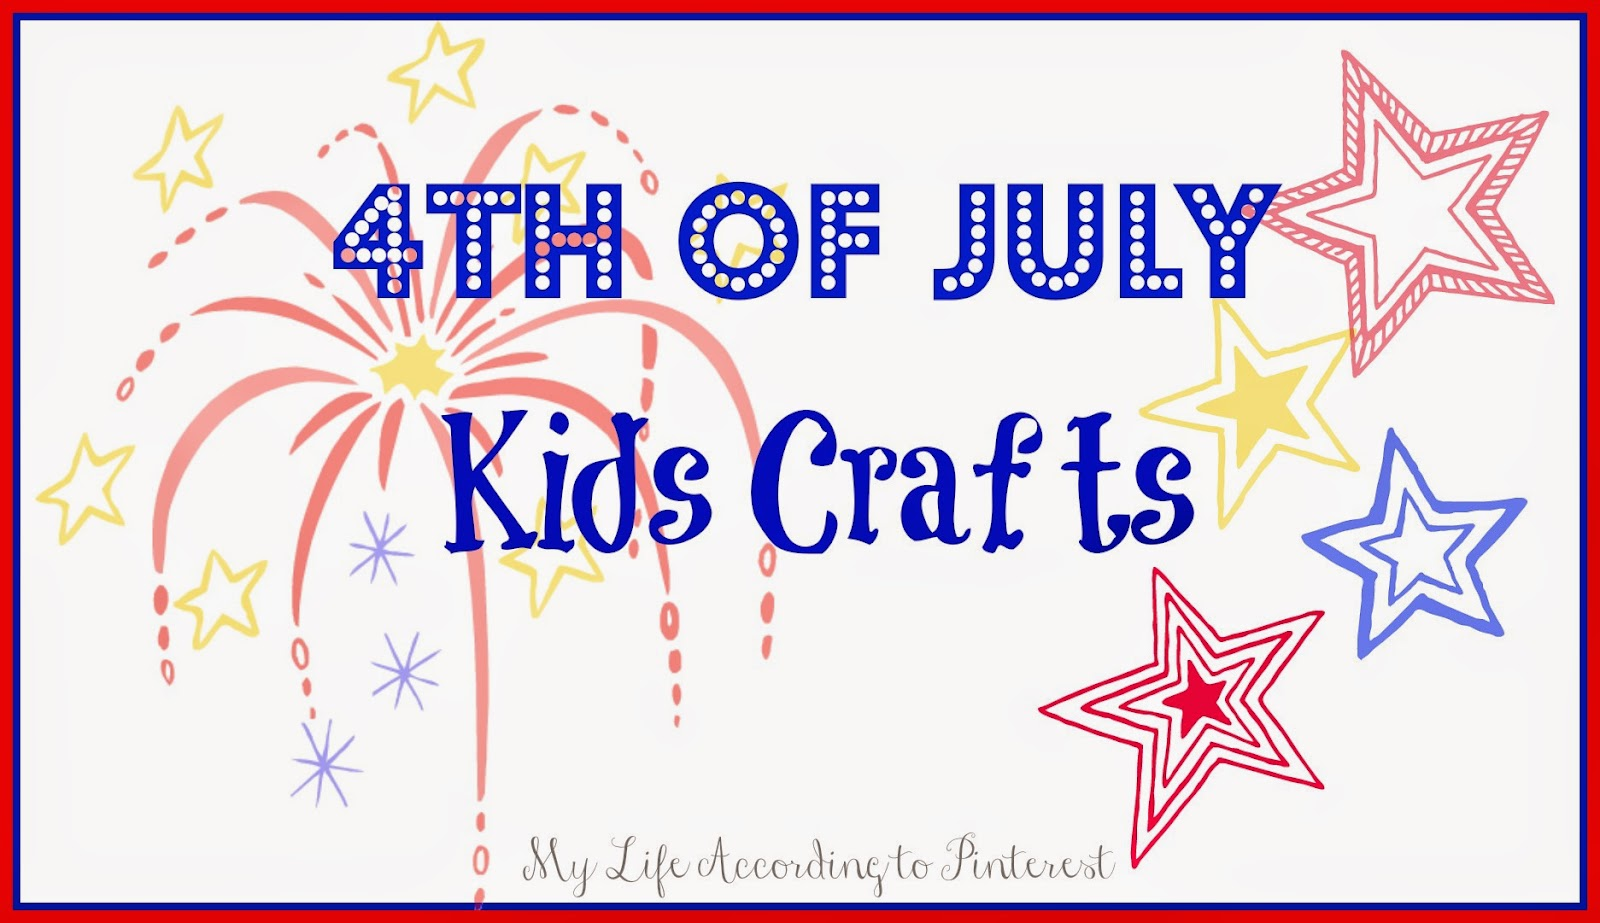 my life according to pinterest 4th of july kids crafts ideas